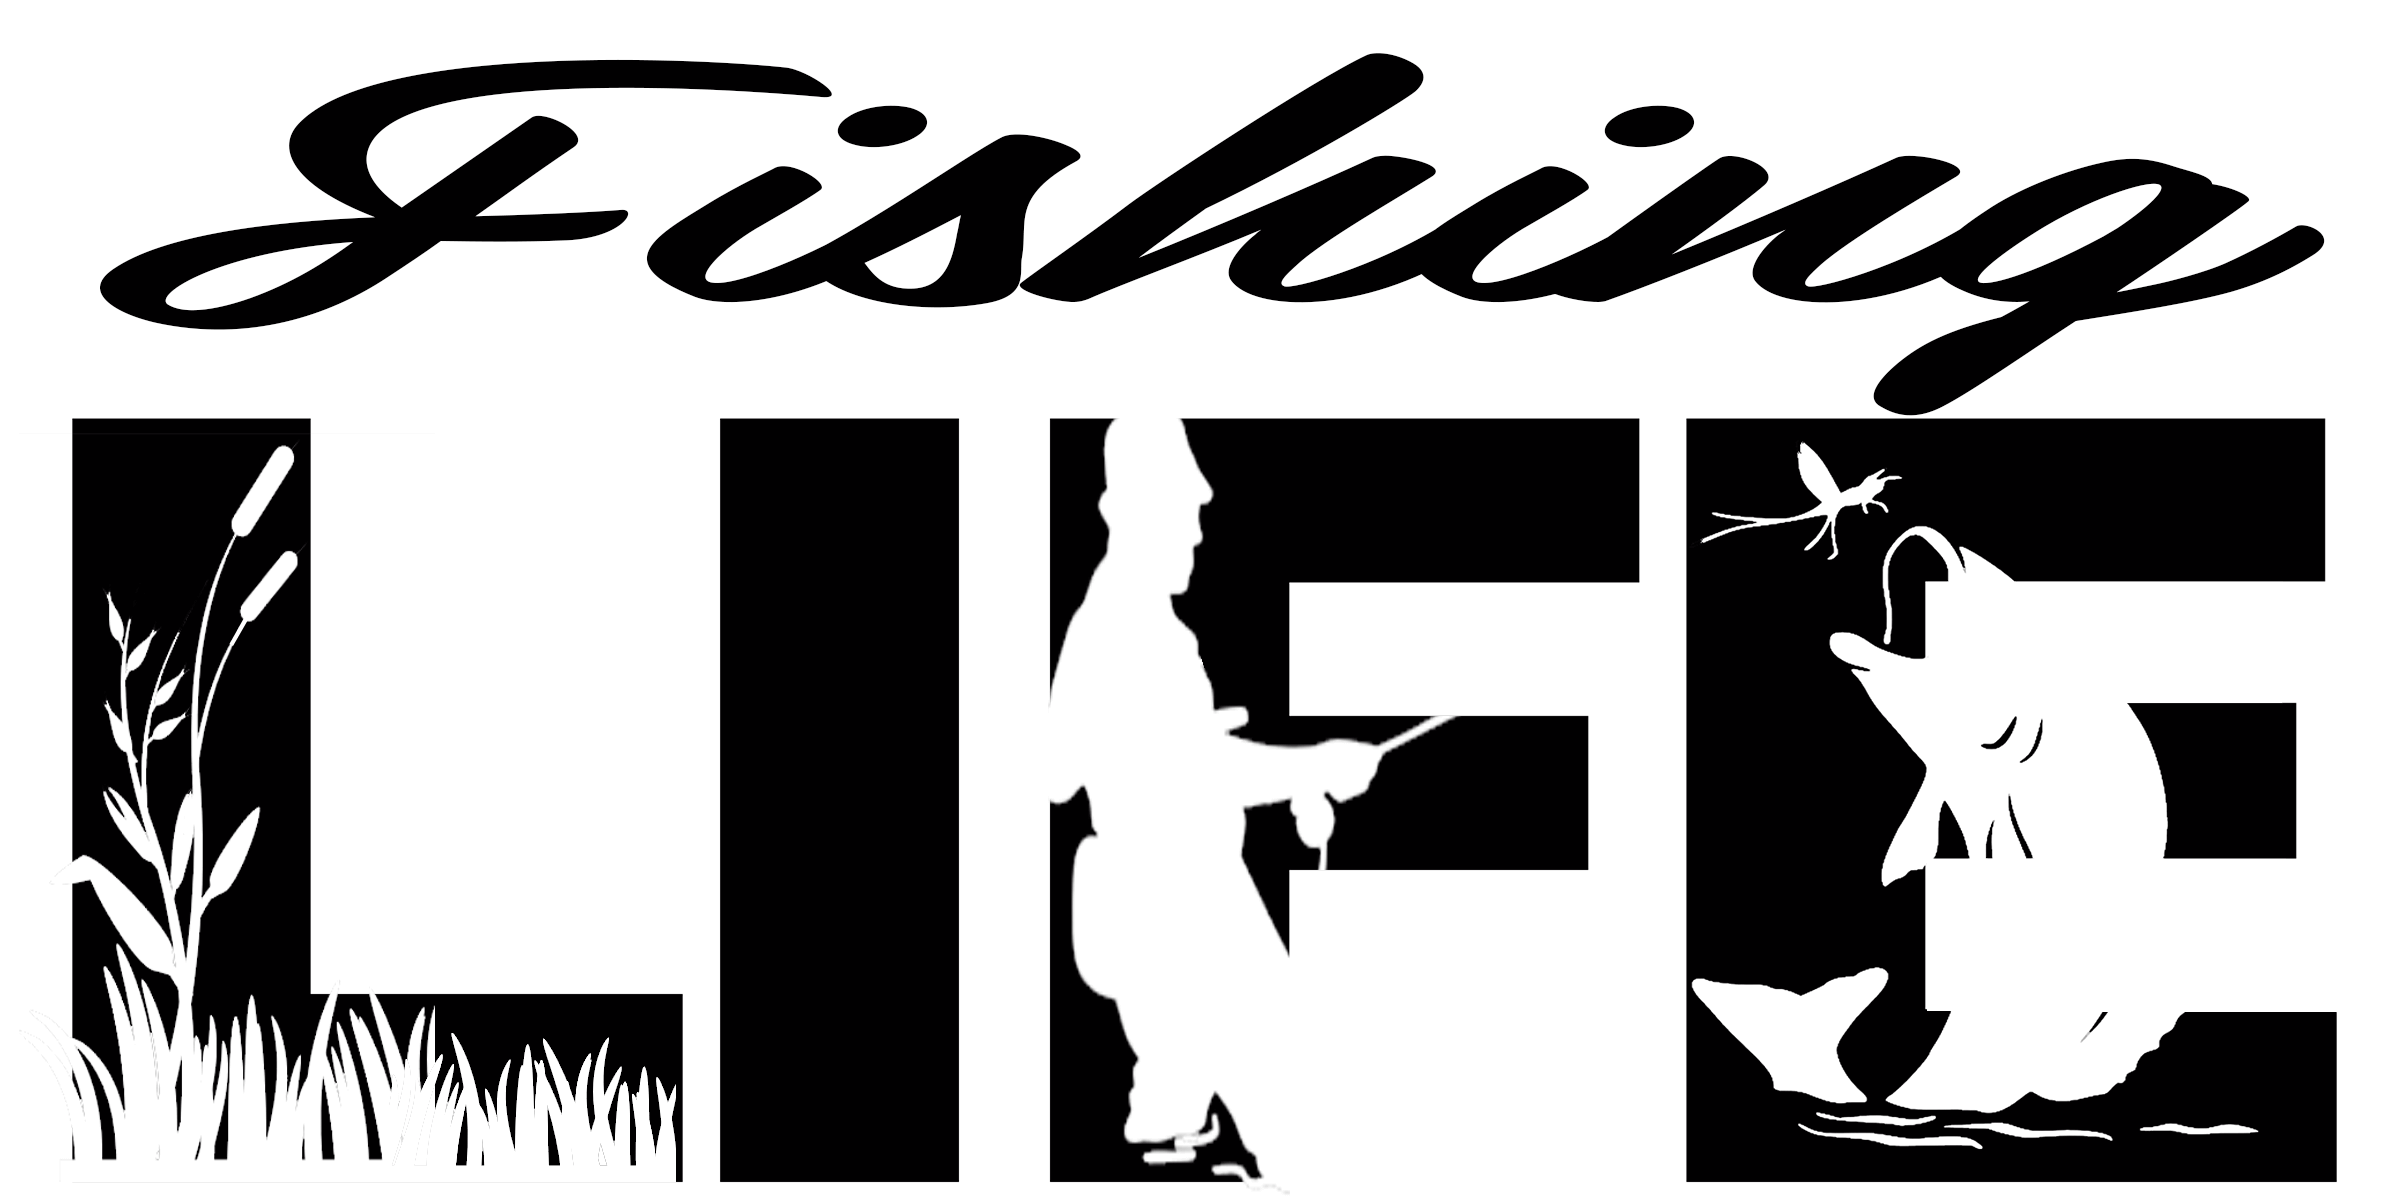 Free fishing life svg cutting file ideal for cricut and many other cutting machines